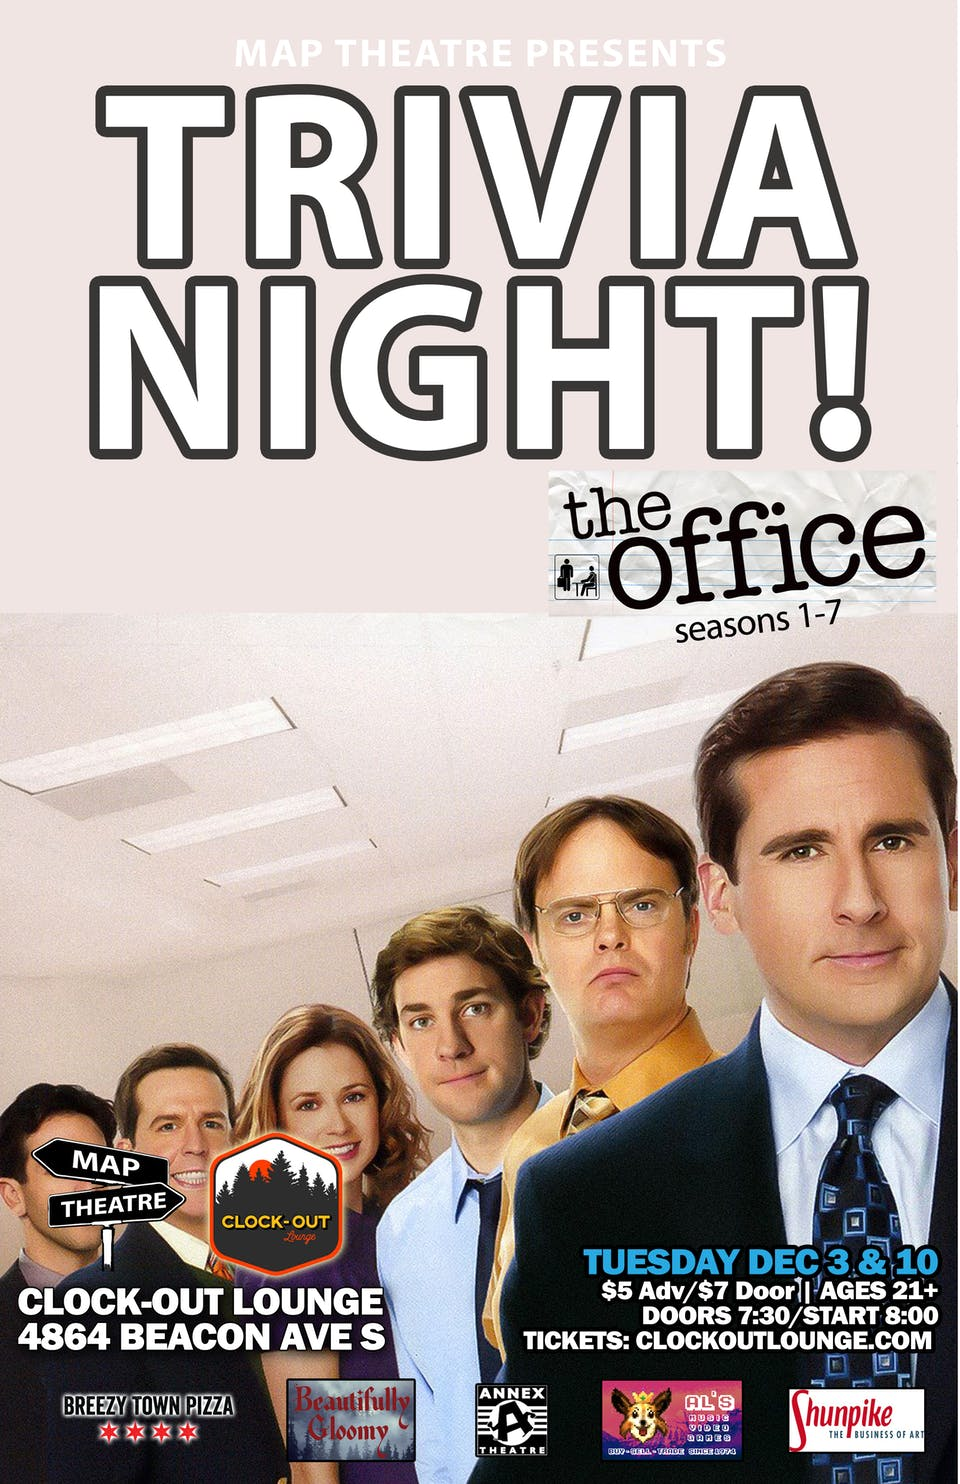 The Office (S.1-7) Trivia Encore